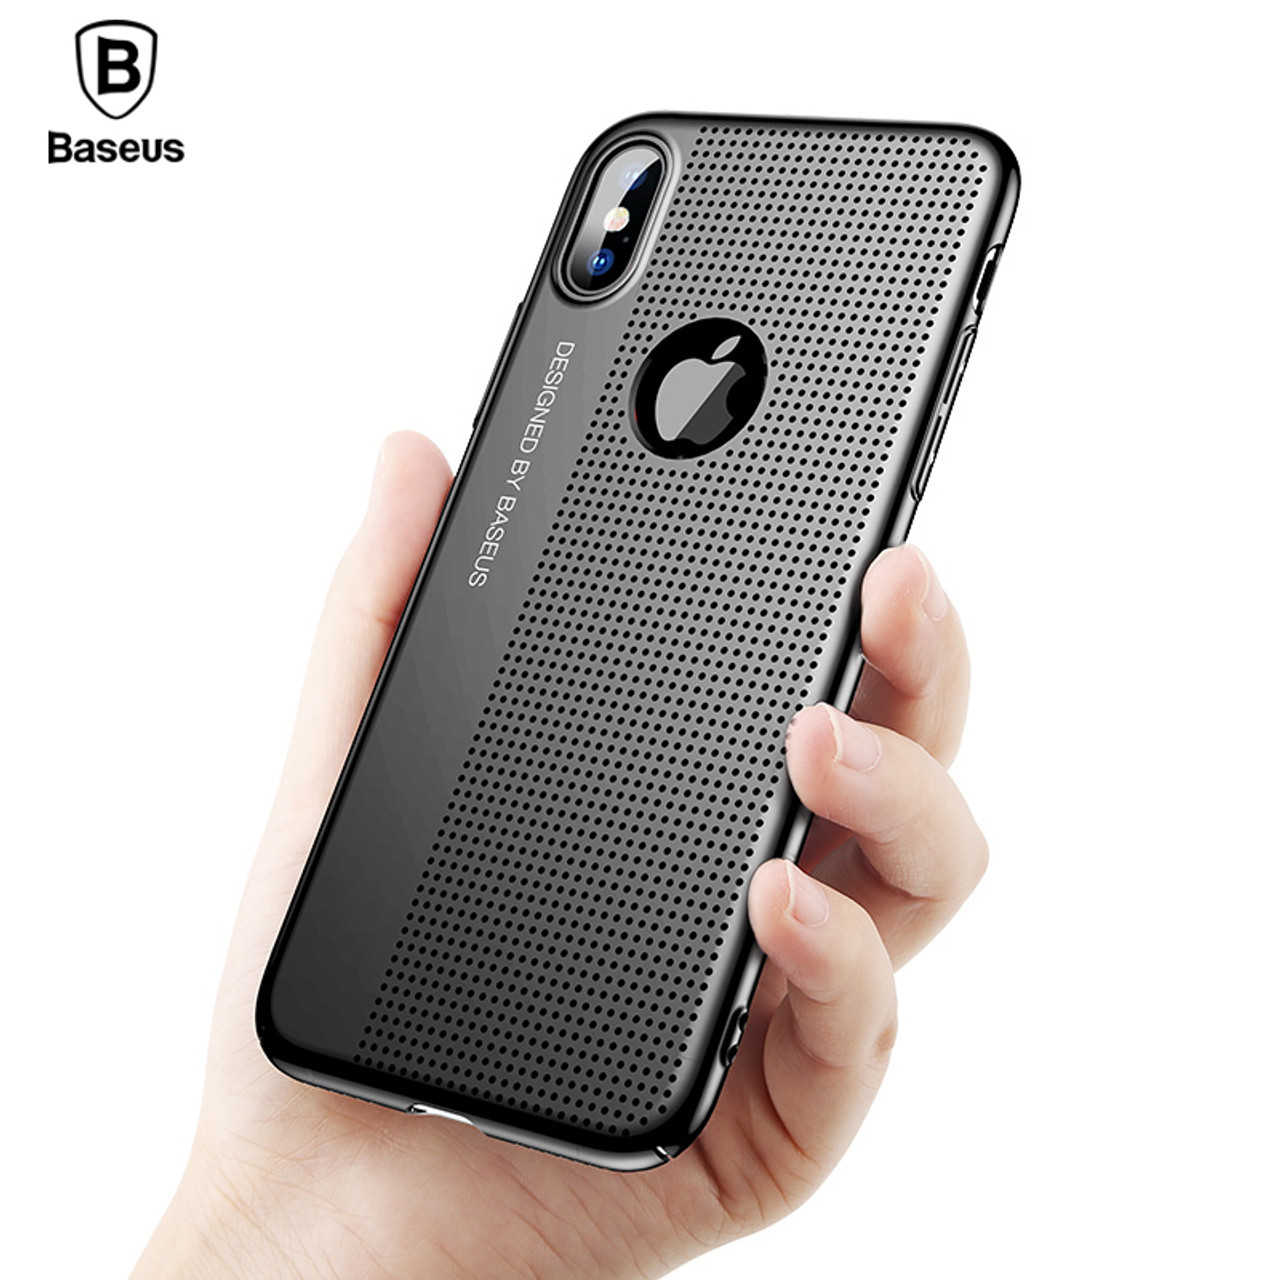 info for 88ca5 84b1e For iPhone X Case Baseus Luxury Plating Hard Plastic Phone Cases For  iPhoneX Ultra Thin Hollow PC Phone Cover For Apple iPhone X